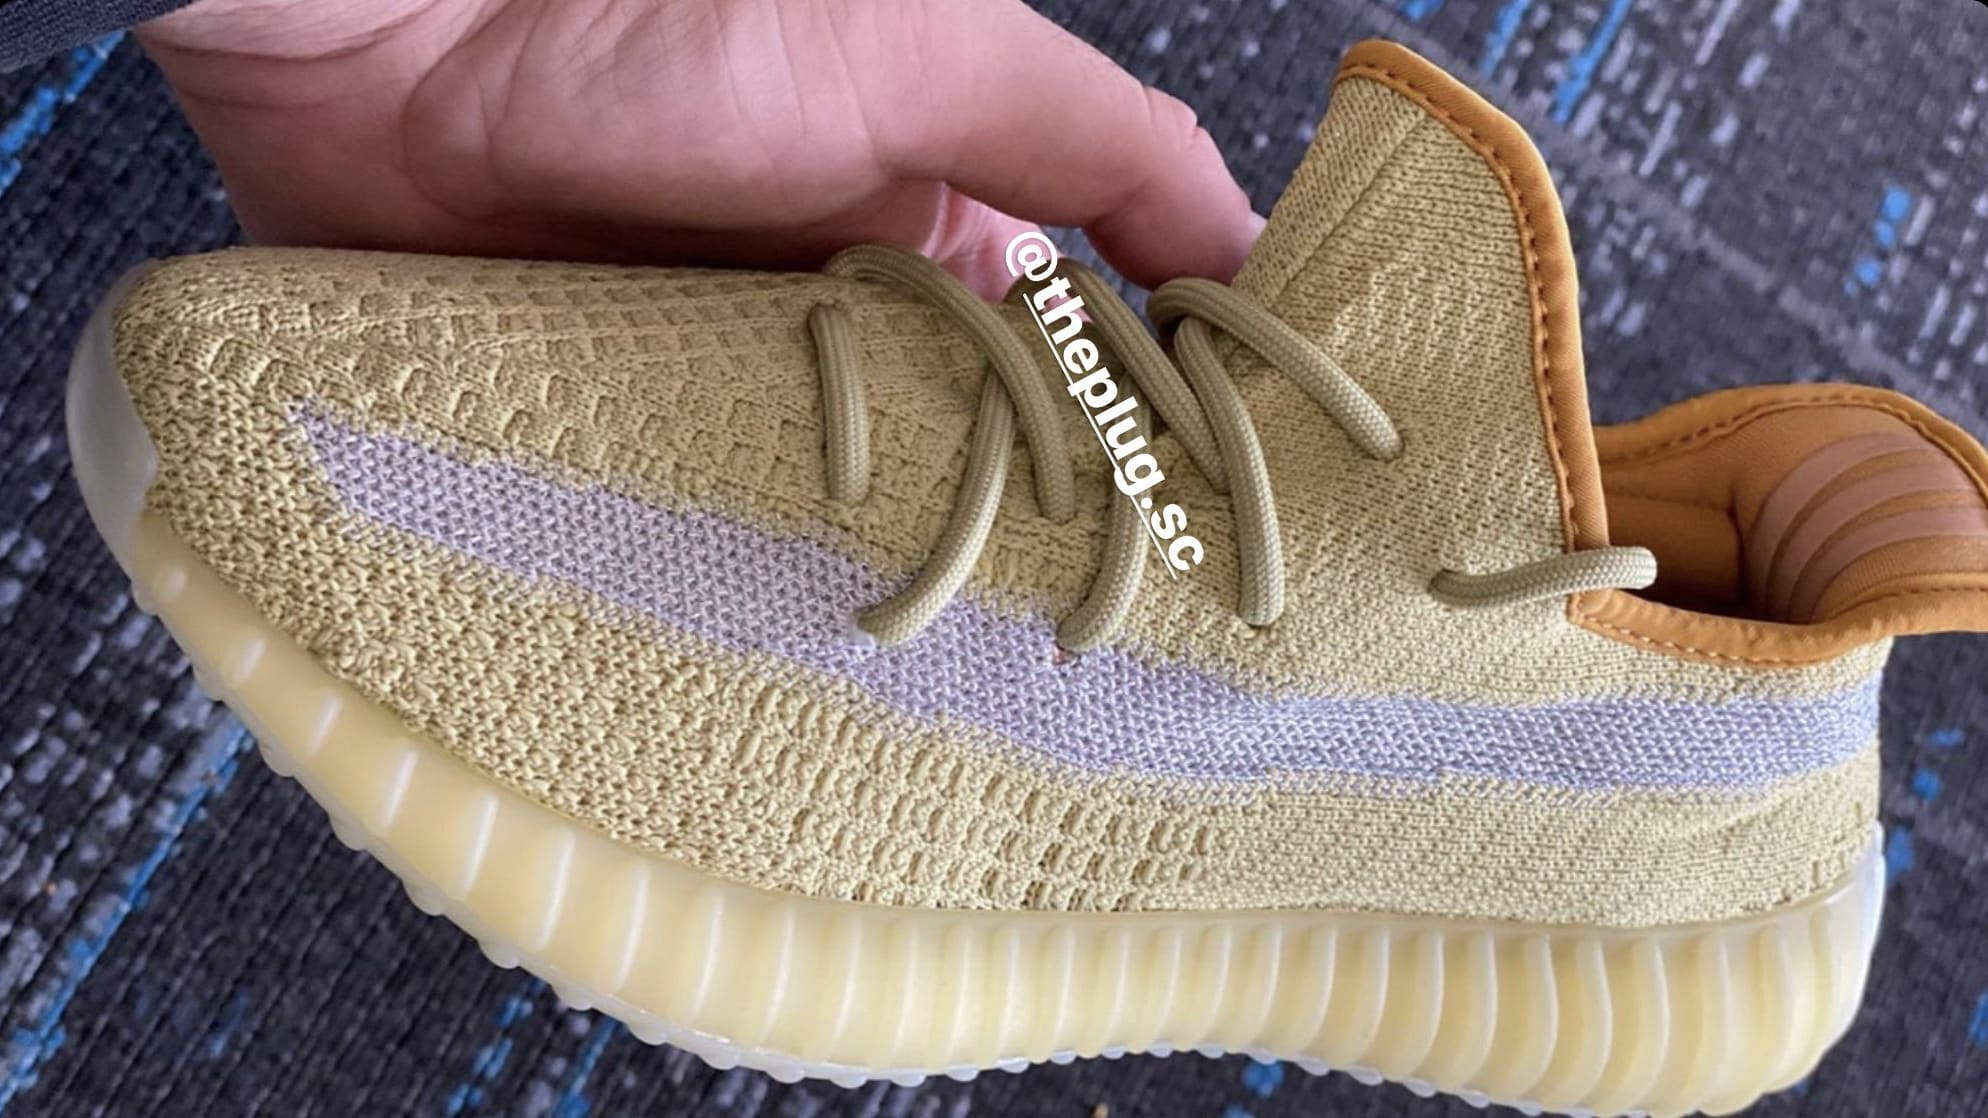 adidas-yeezy-boost-350-v2-sulfur-lateral